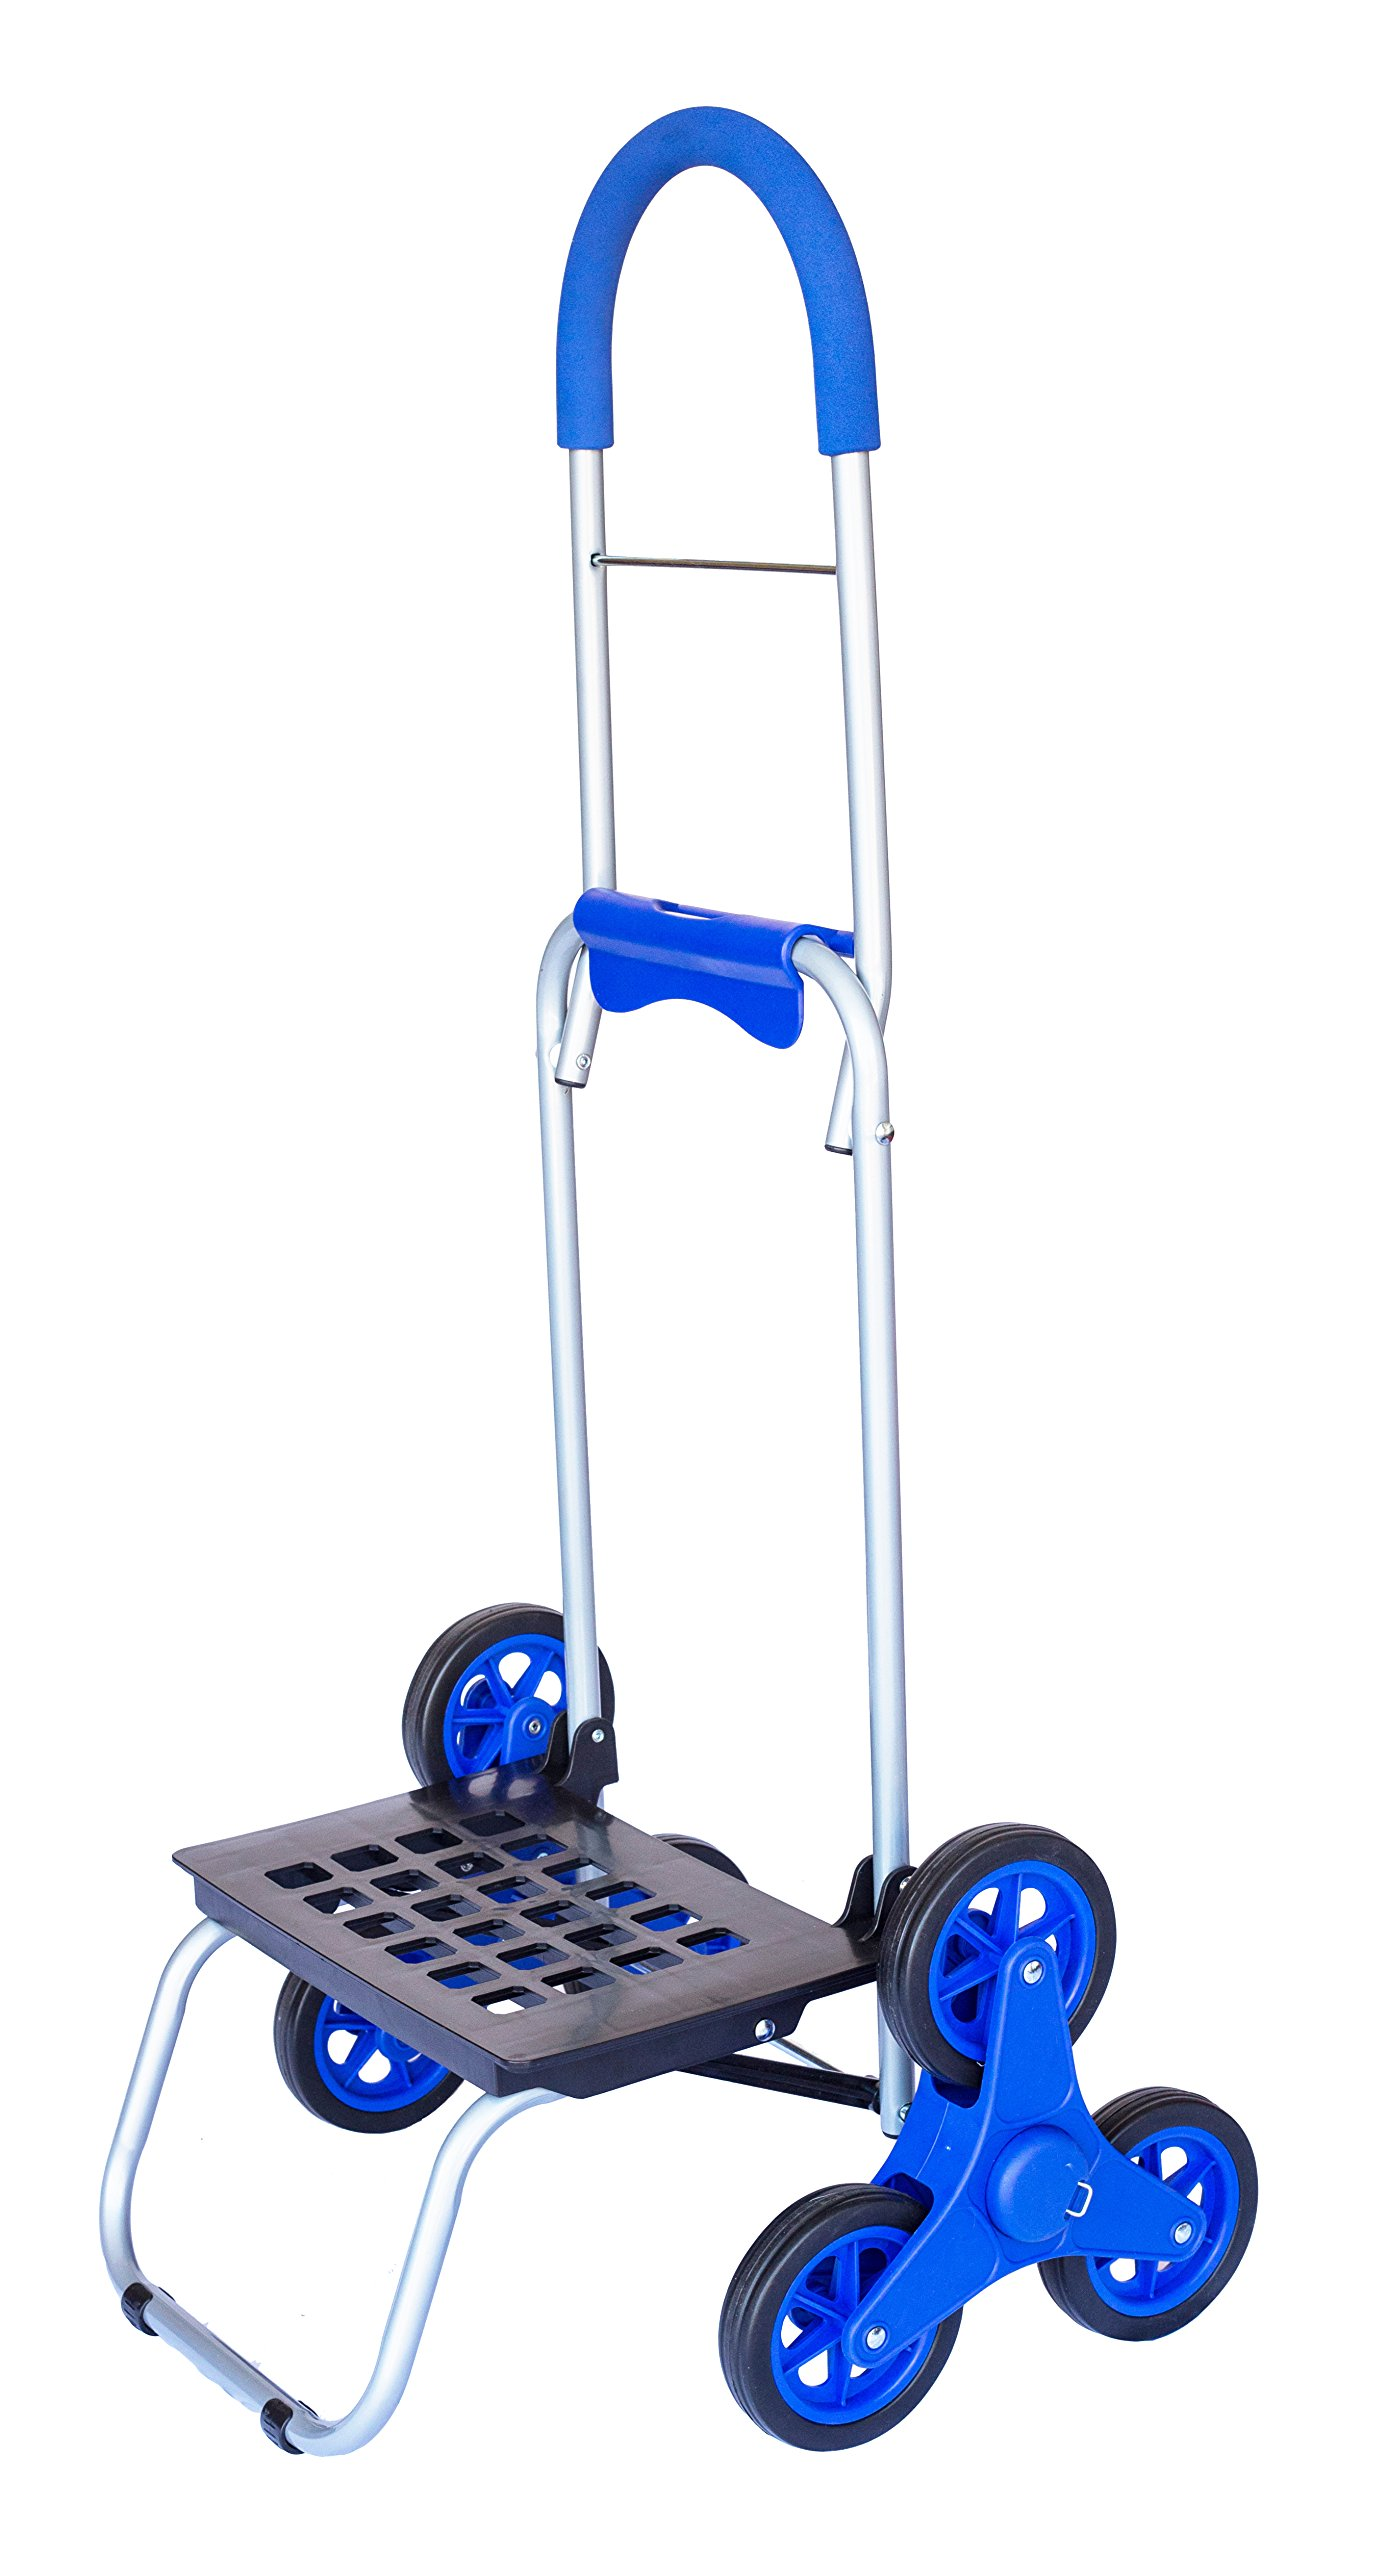 dbest products Stair Climber Trolley Dolly, Blue Shopping Grocery Foldable Cart Condo Apartment by dbest products (Image #3)